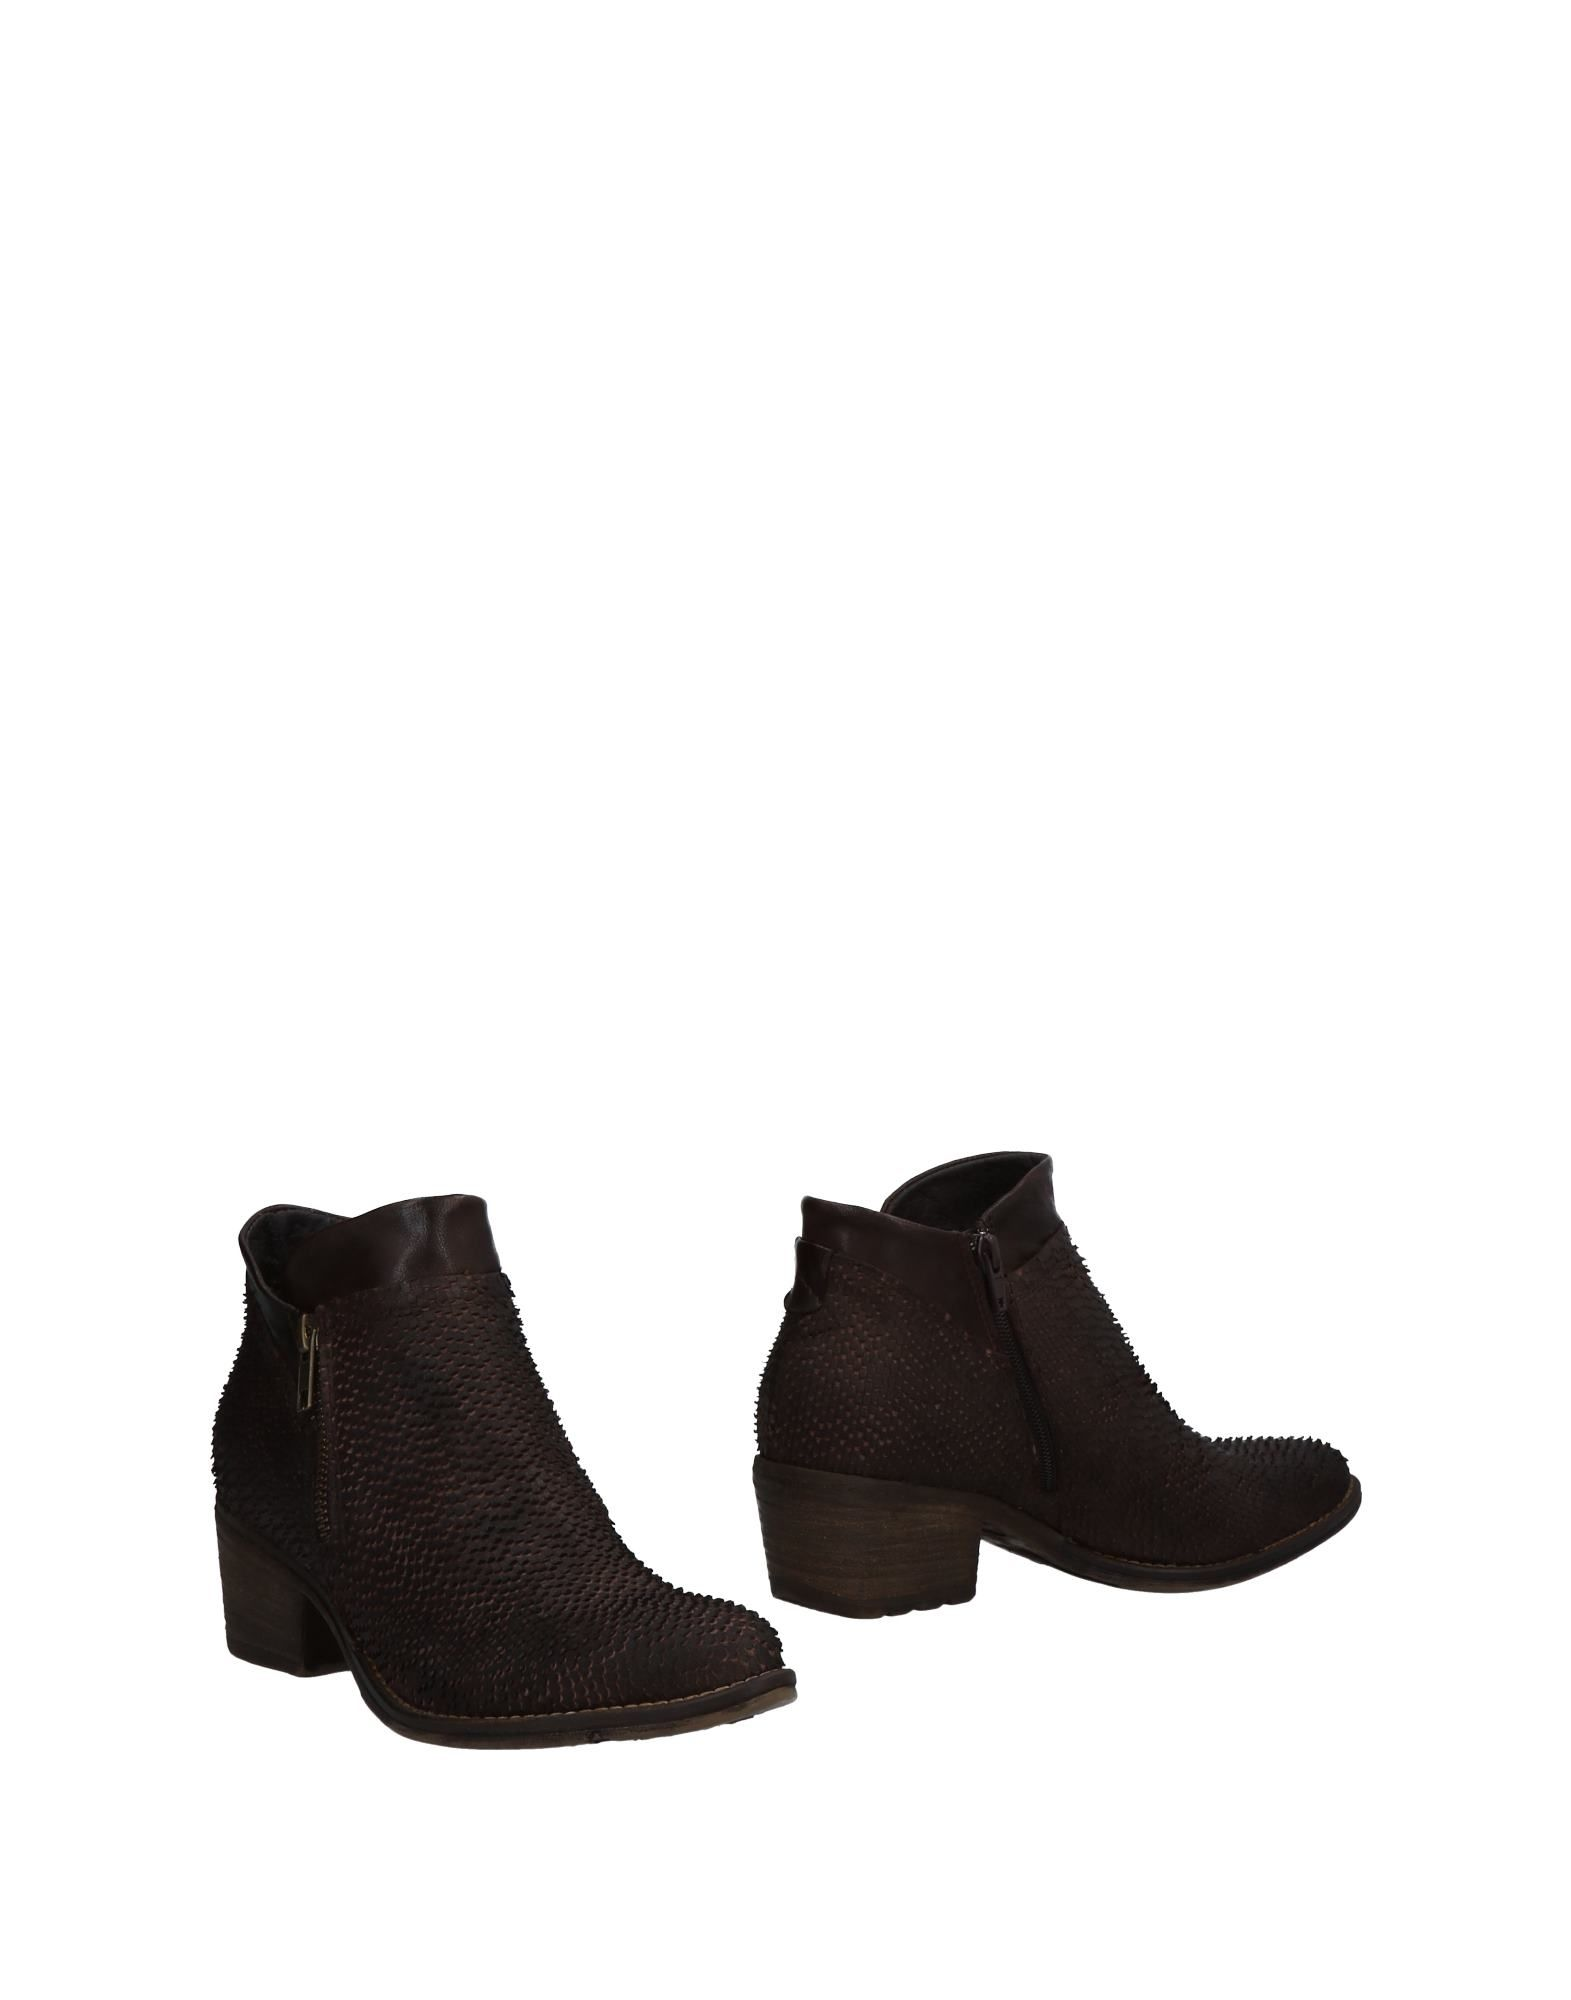 Khrio' Ankle Boot - Women Khrio'  Ankle Boots online on  Khrio' United Kingdom - 11492383PF 321bad